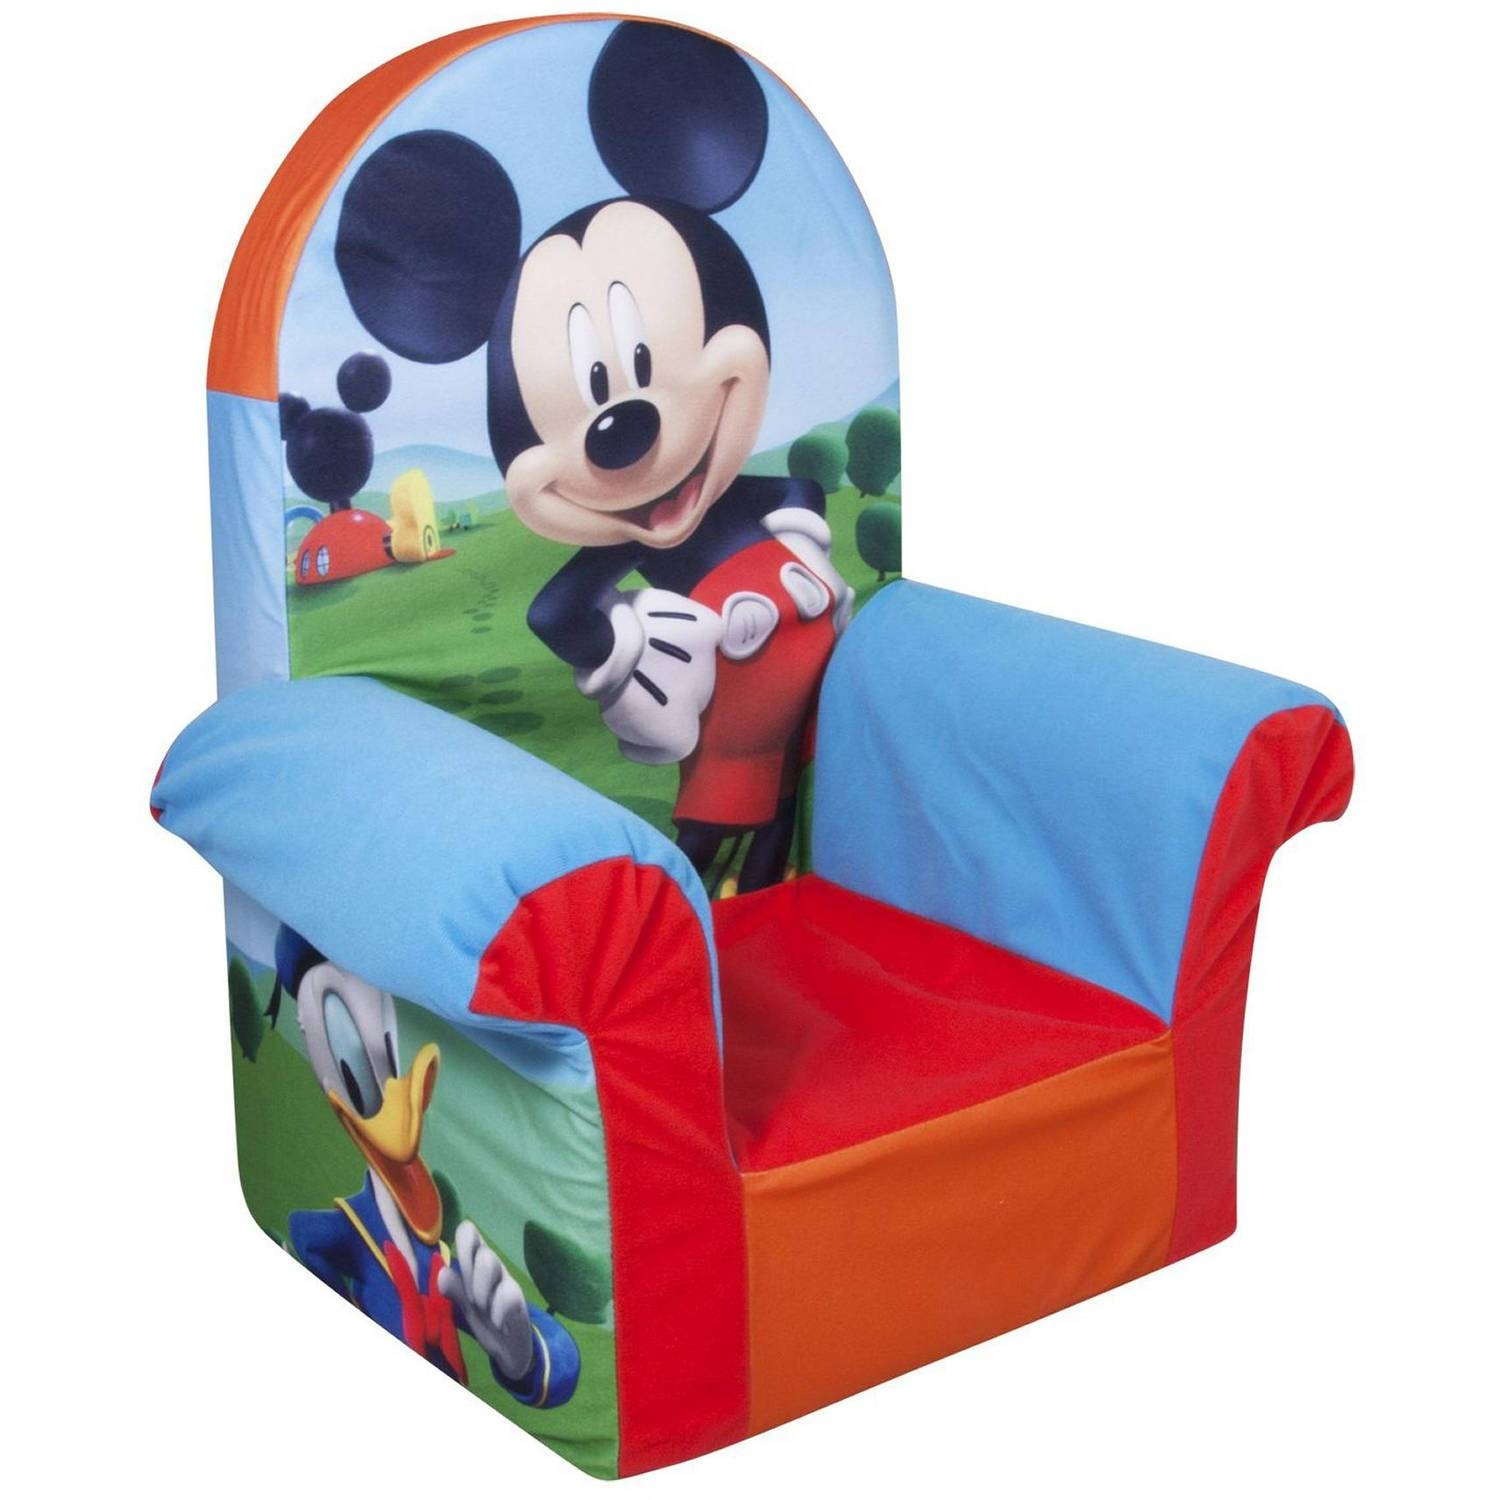 Marshmallow High Back Chair, Disney Doc Mcstuffins - Walmart pertaining to Disney Sofa Chairs (Image 11 of 15)